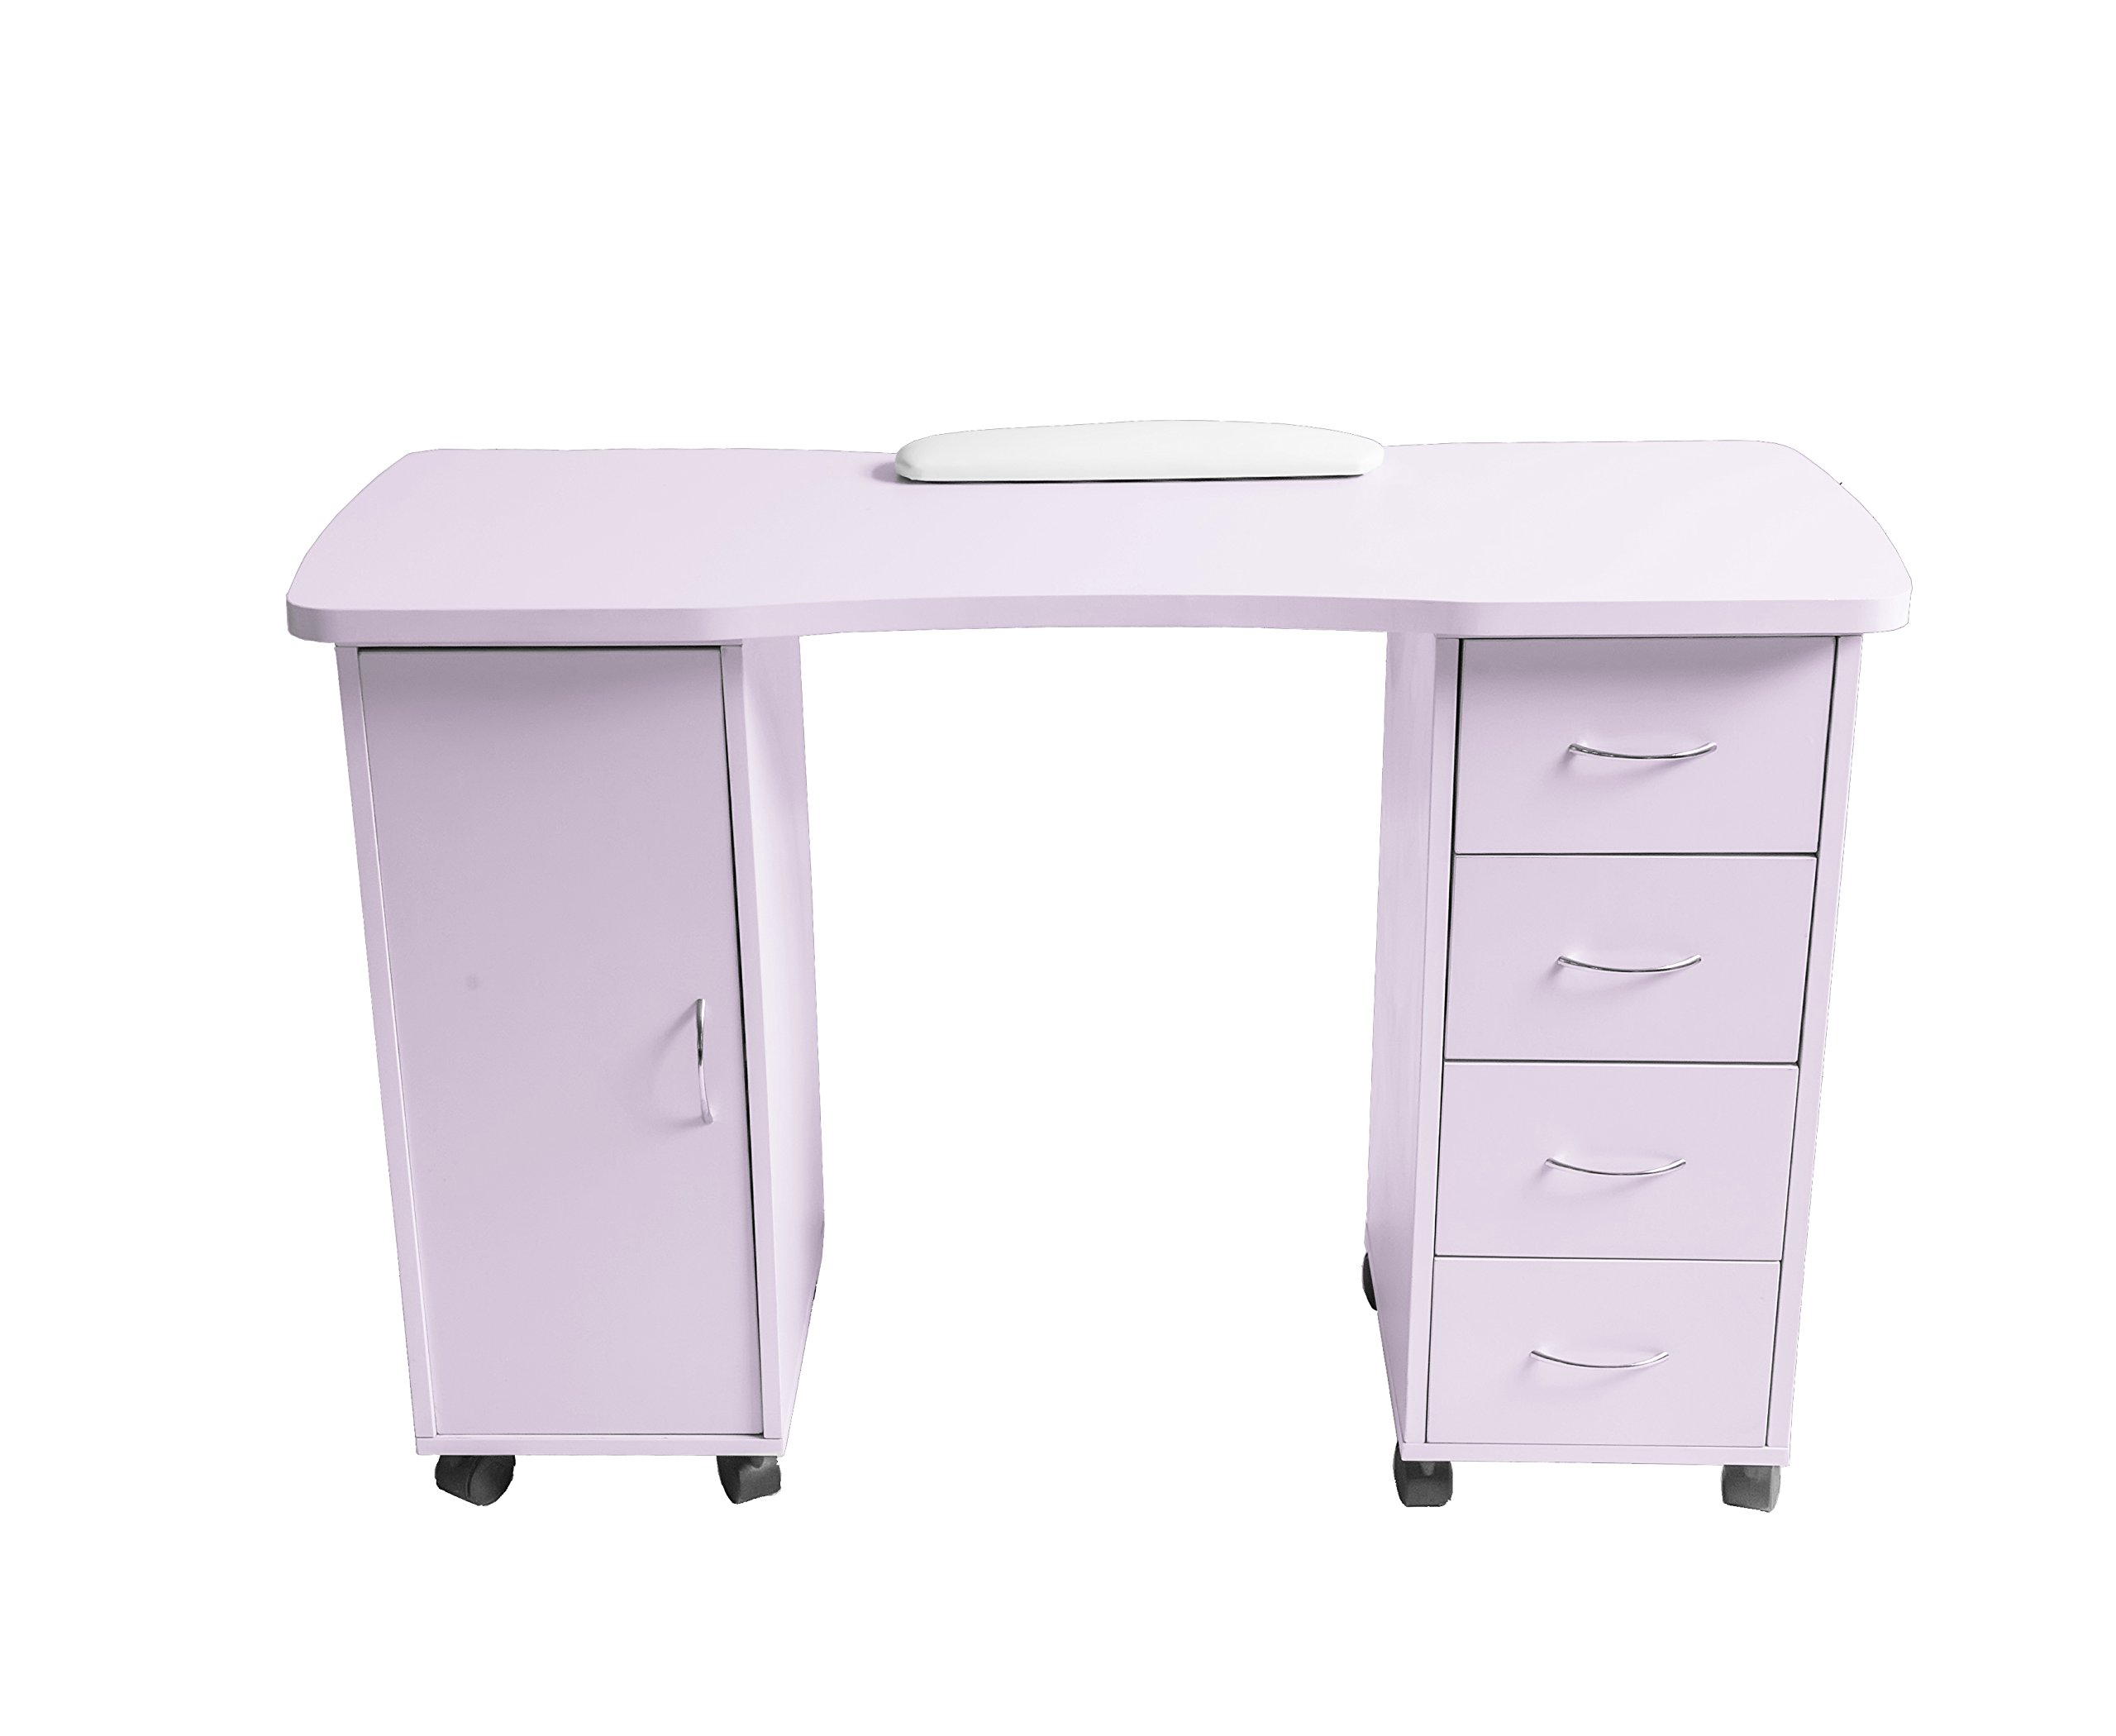 ExacMe Slightly purple Manicure Nail Table Station Desk Spa Beauty Salon Equipment 400/600 (600)